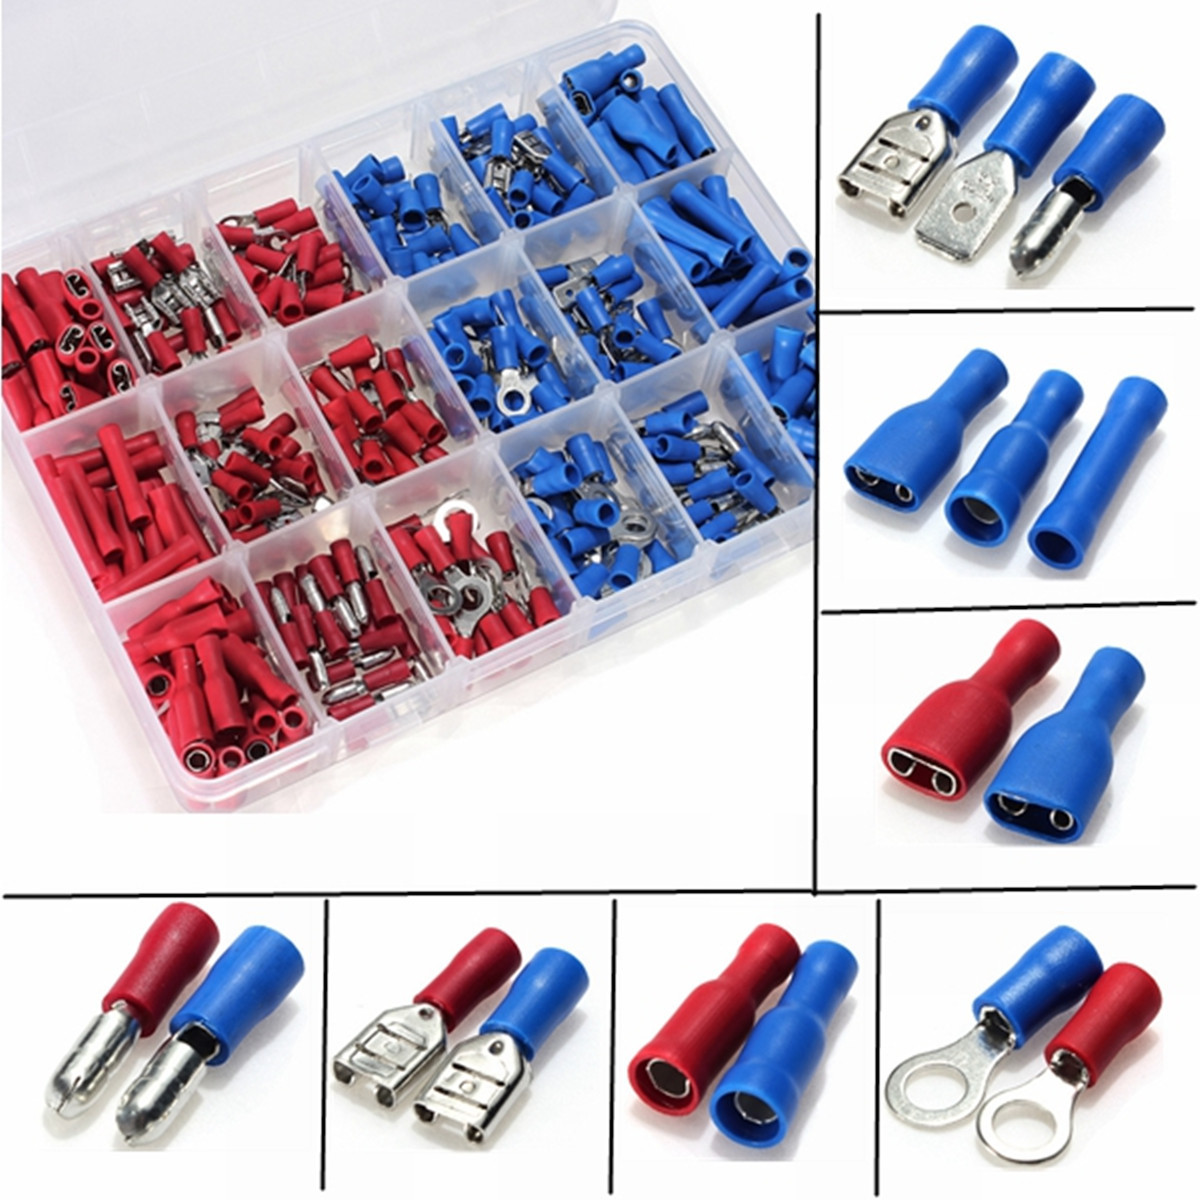 Excellway® EC09 358Pcs Insulated Electrical Wire Terminals Crimp Connector Butt Spade Kit